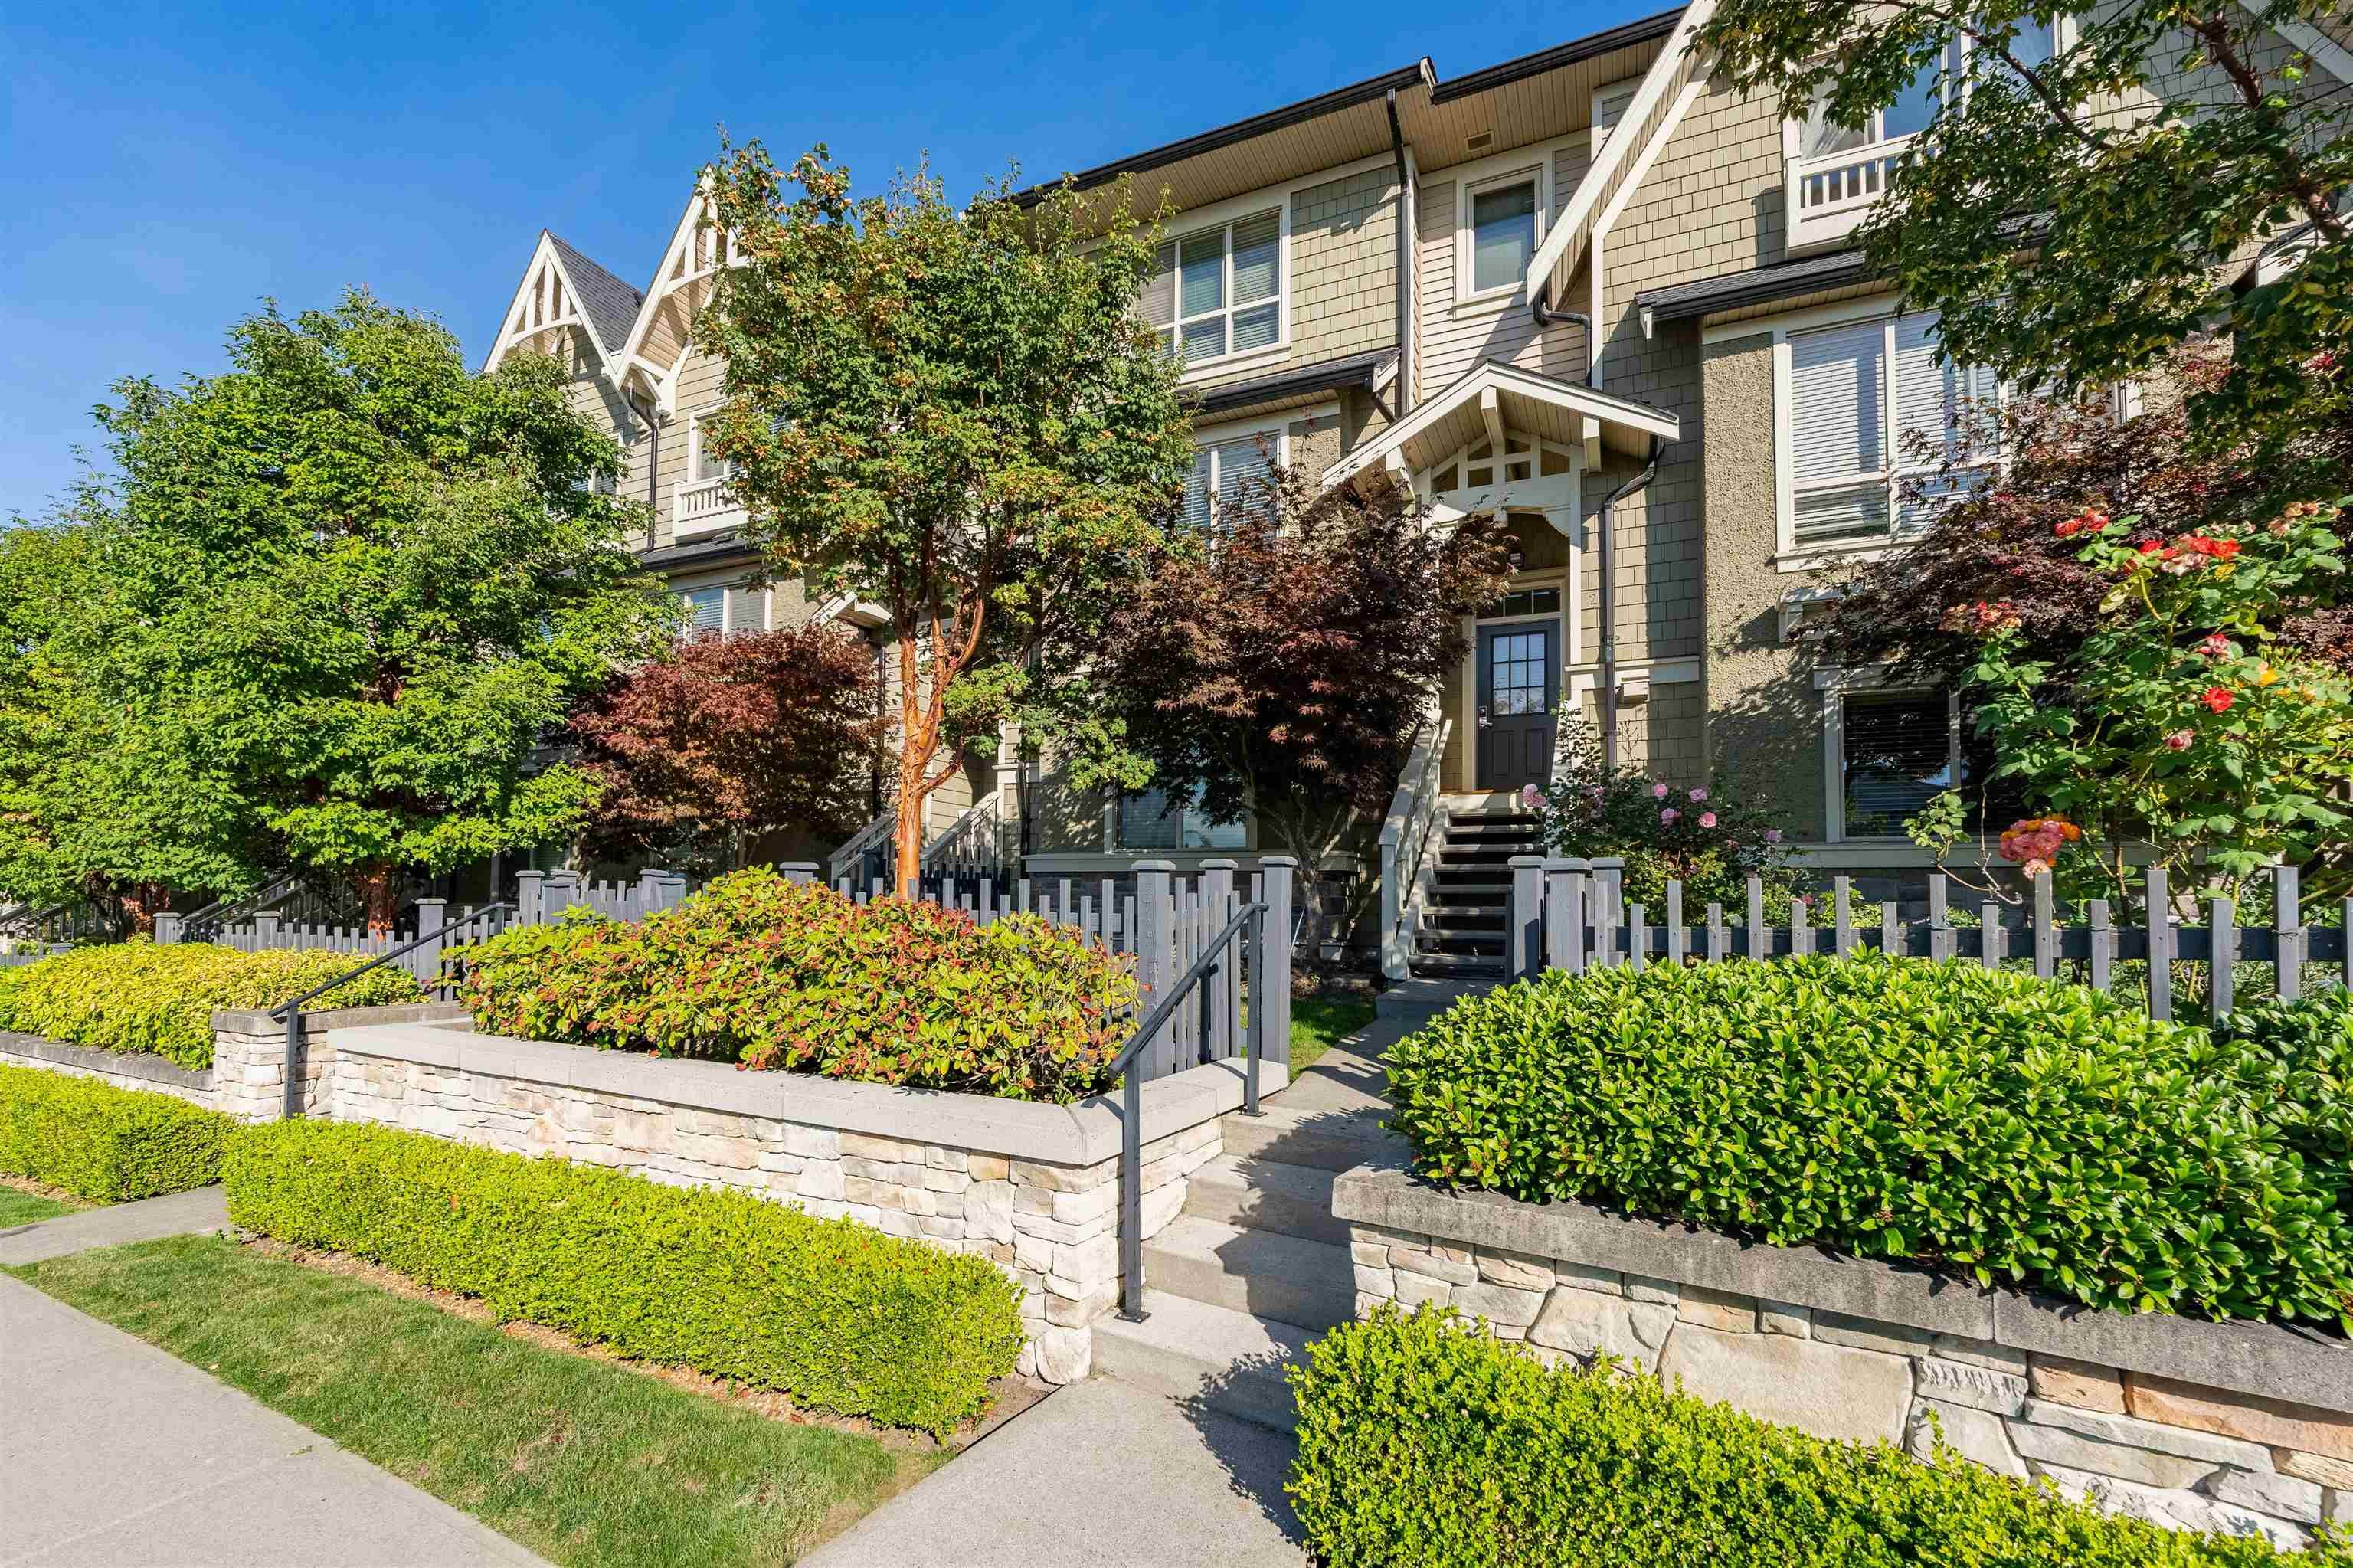 """Main Photo: 2 10595 DELSOM Crescent in Delta: Nordel Townhouse for sale in """"CAPELLA at Sunstone (by Polygon)"""" (N. Delta)  : MLS®# R2616696"""